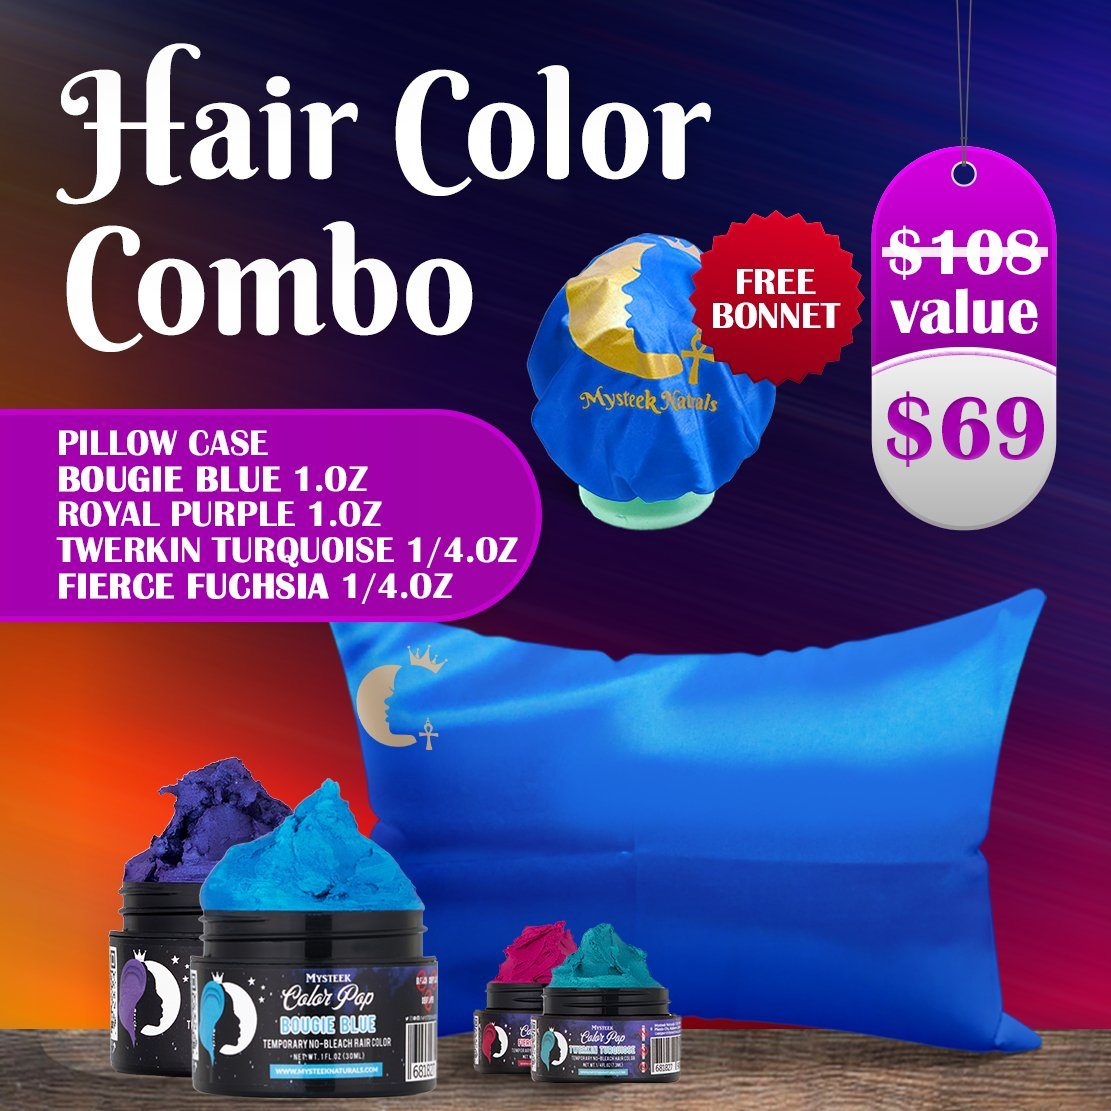 Hair Color Combo - FREE SLEEP KIT